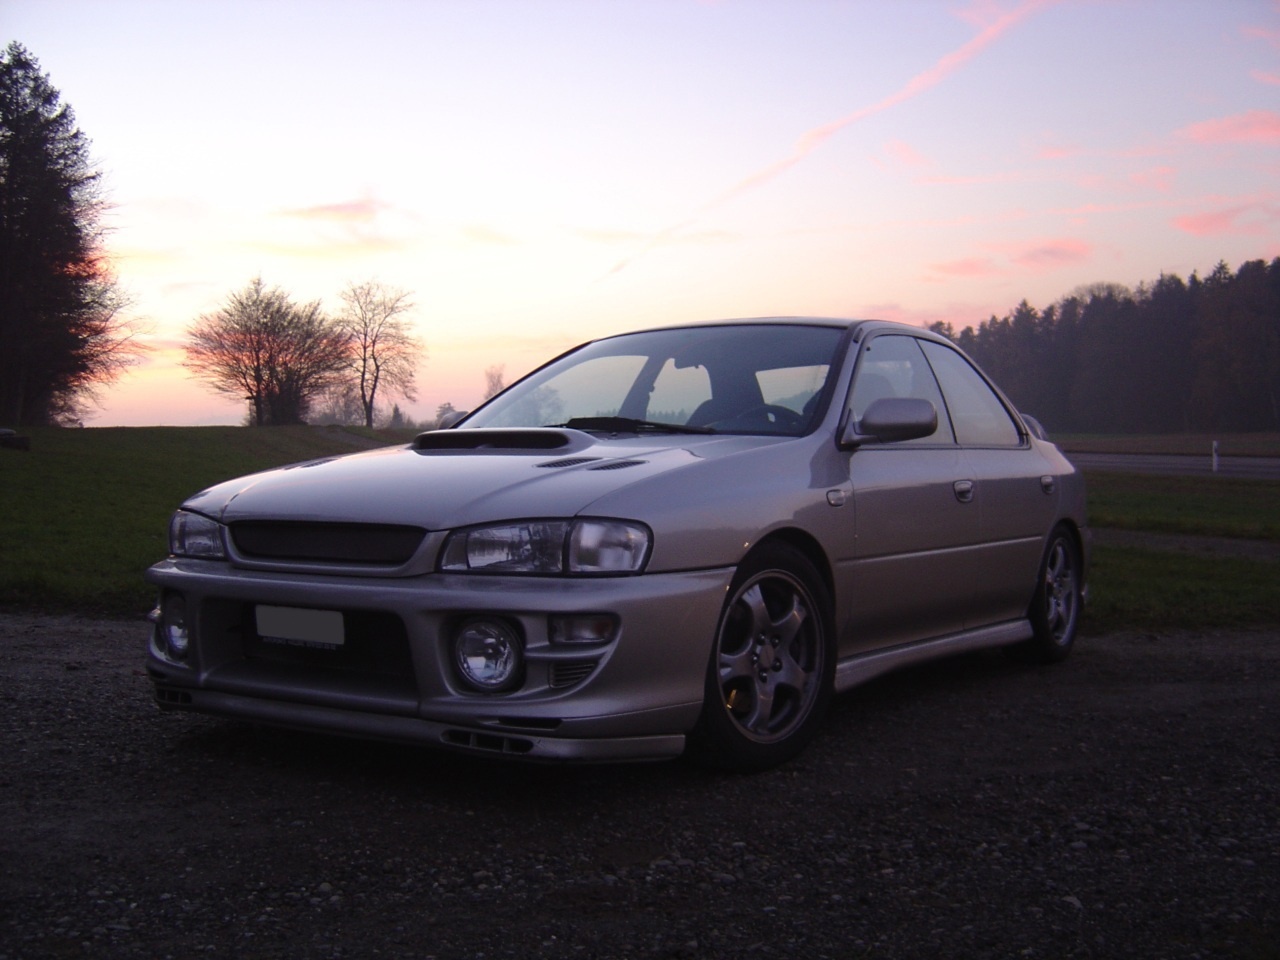 subaru impreza turbo super racing picture 3 reviews news specs buy car. Black Bedroom Furniture Sets. Home Design Ideas